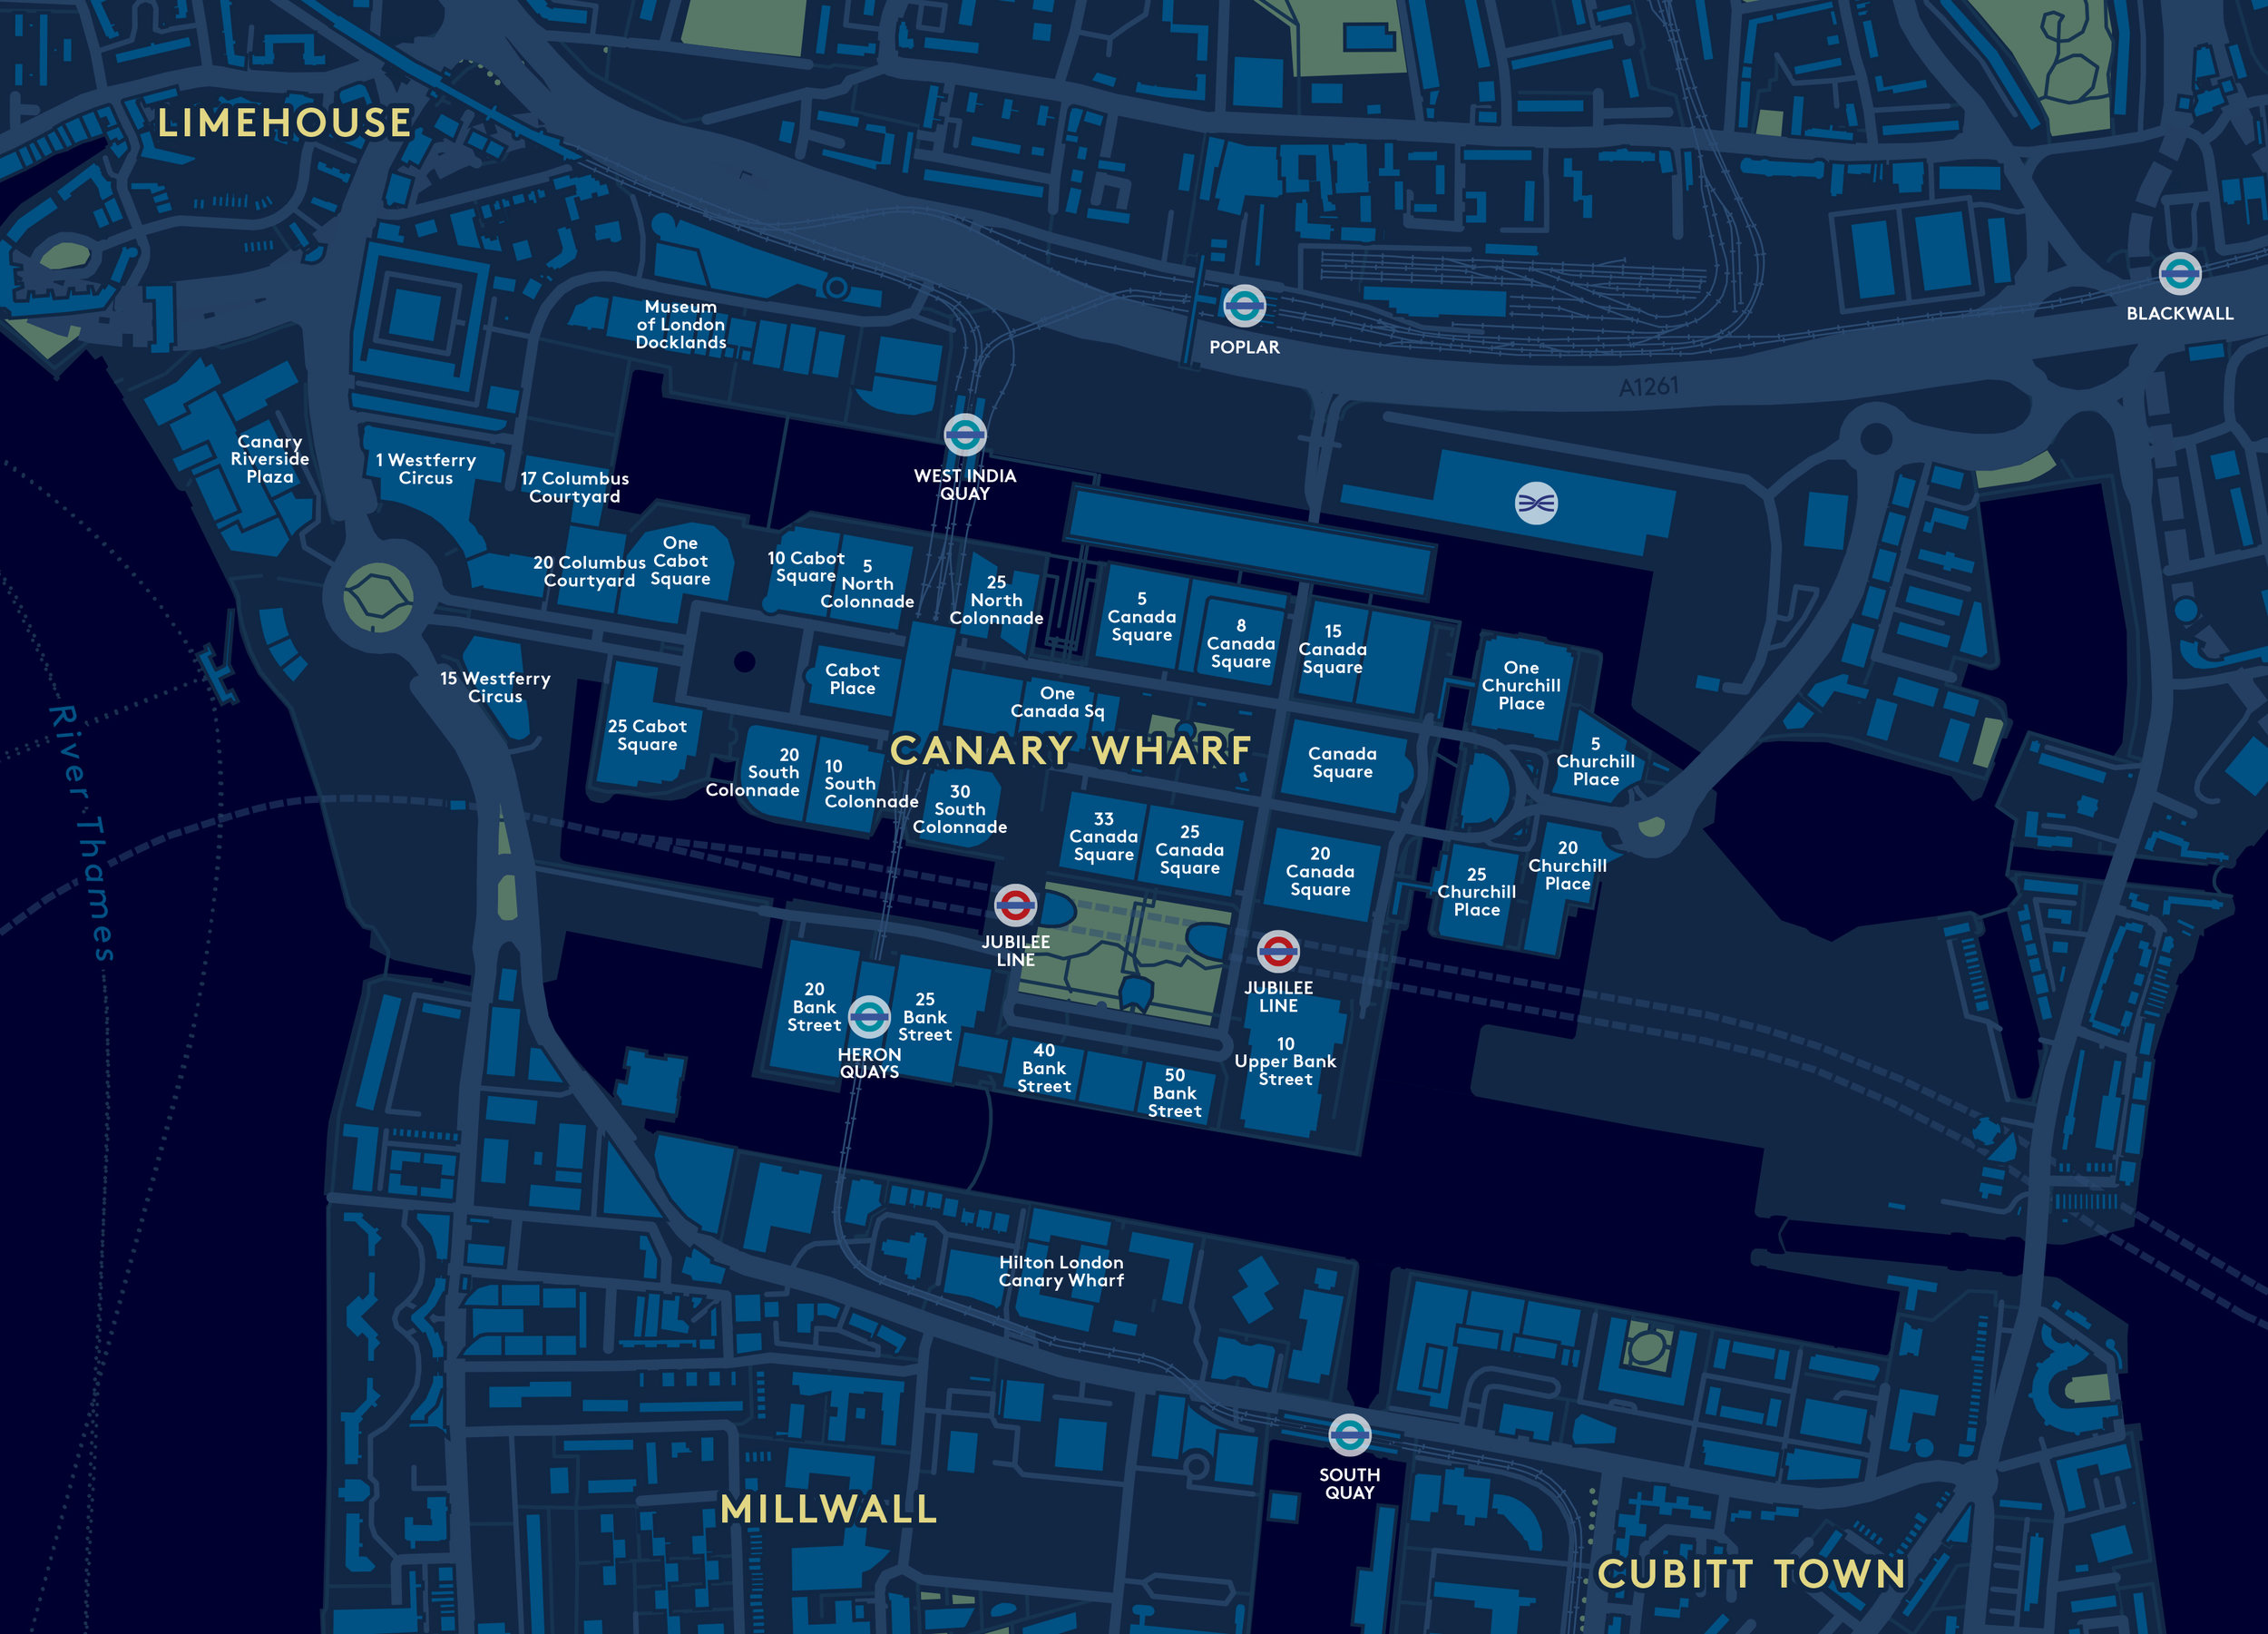 canary wharf london building detail map.jpg